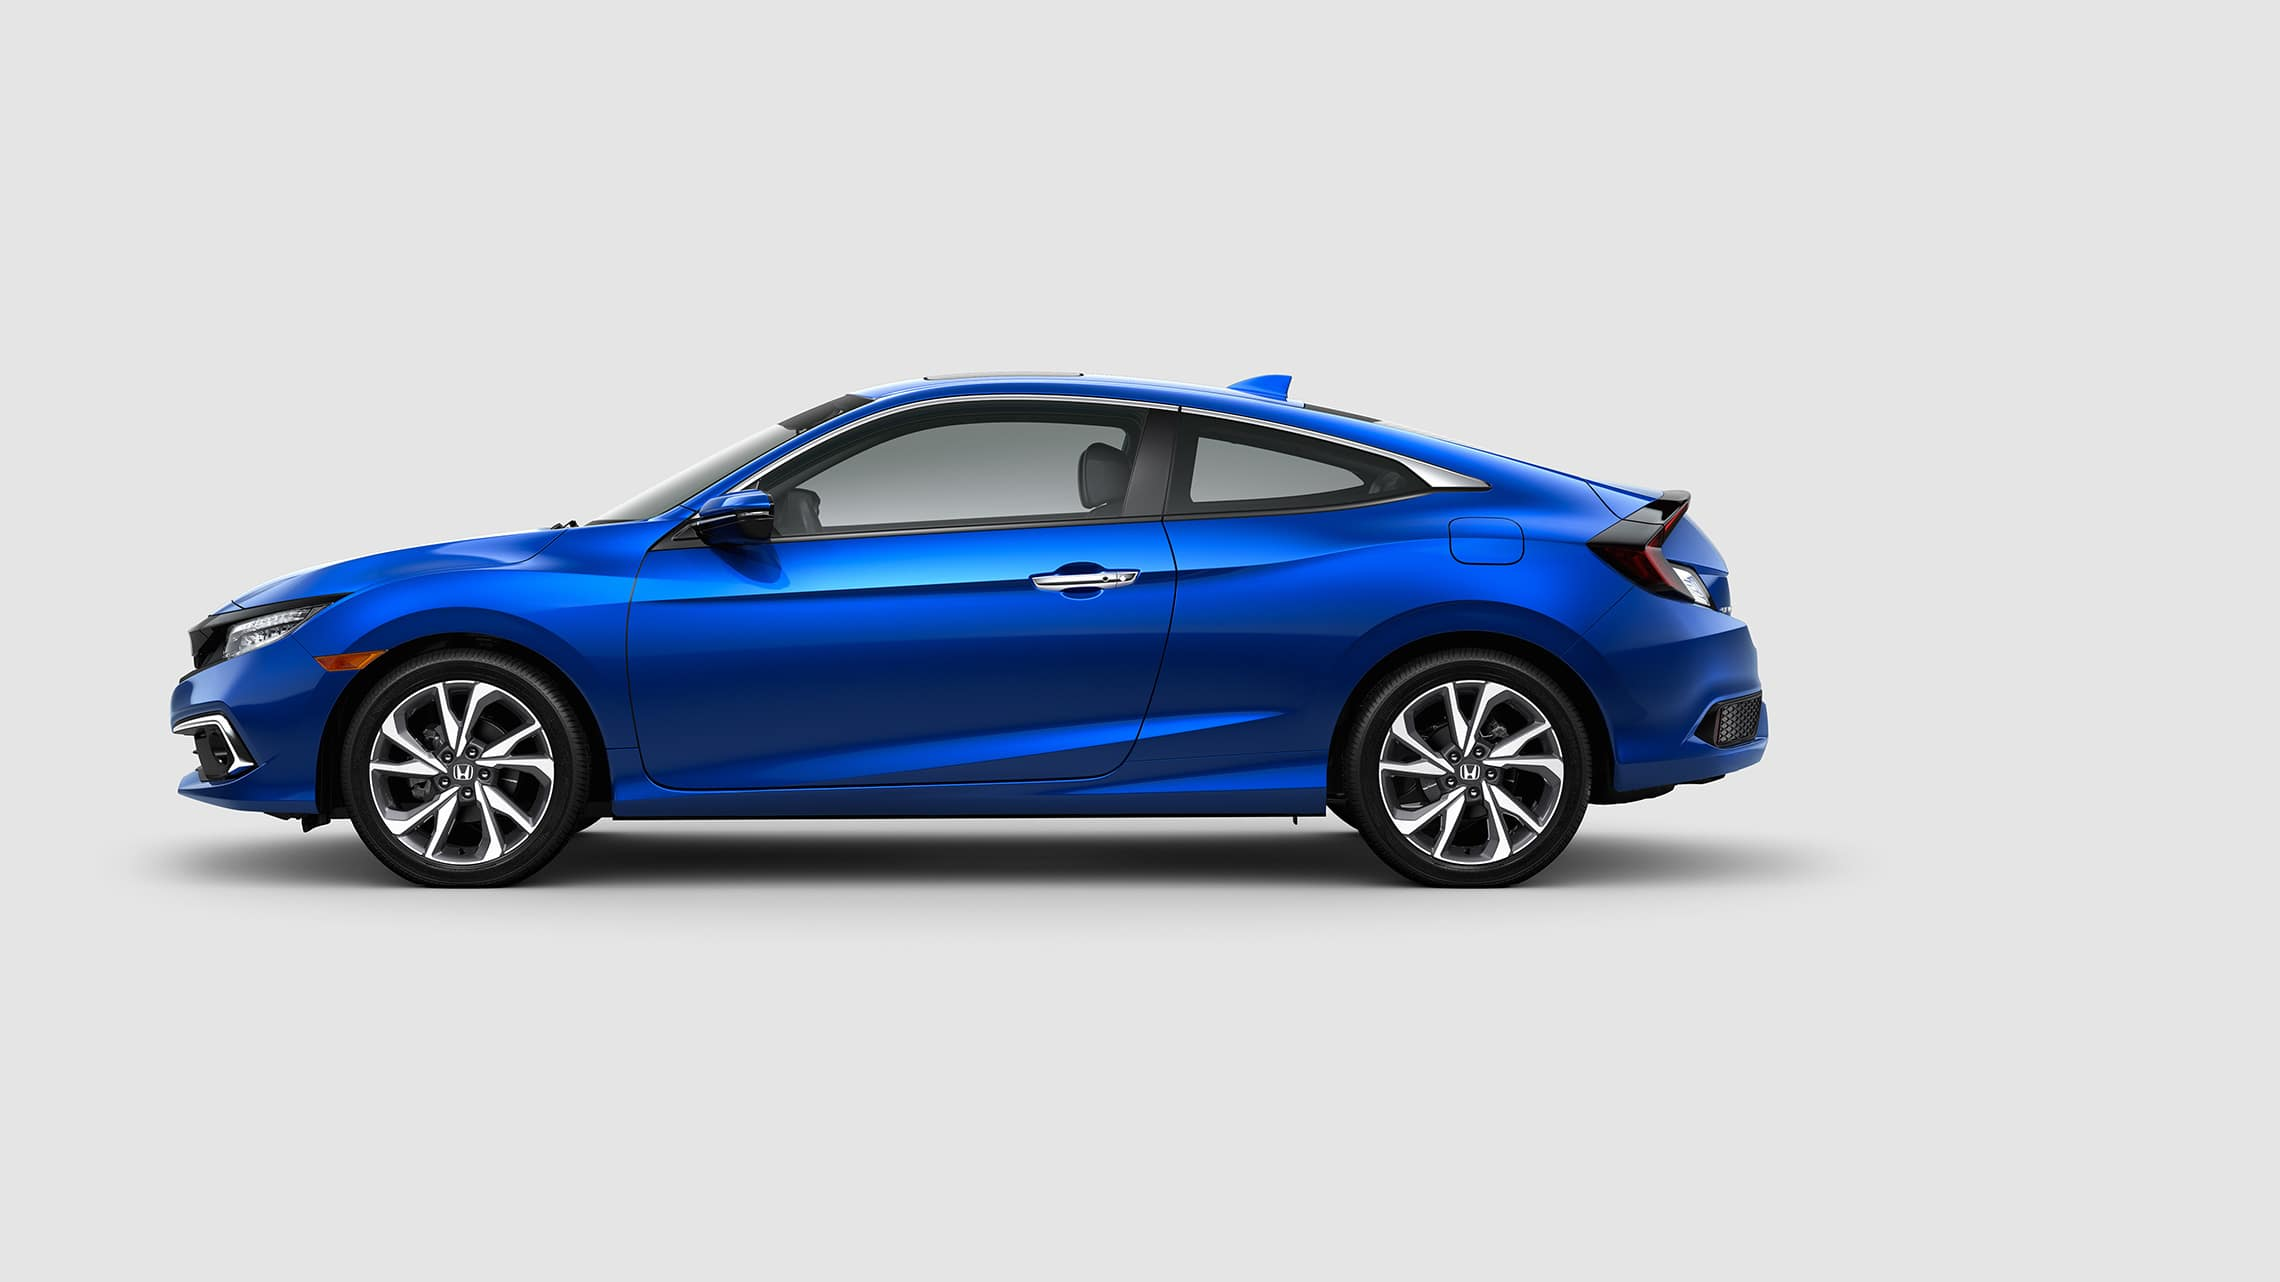 Driver-side view of the 2020 Civic Touring Coupe in Aegean Blue Metallic.